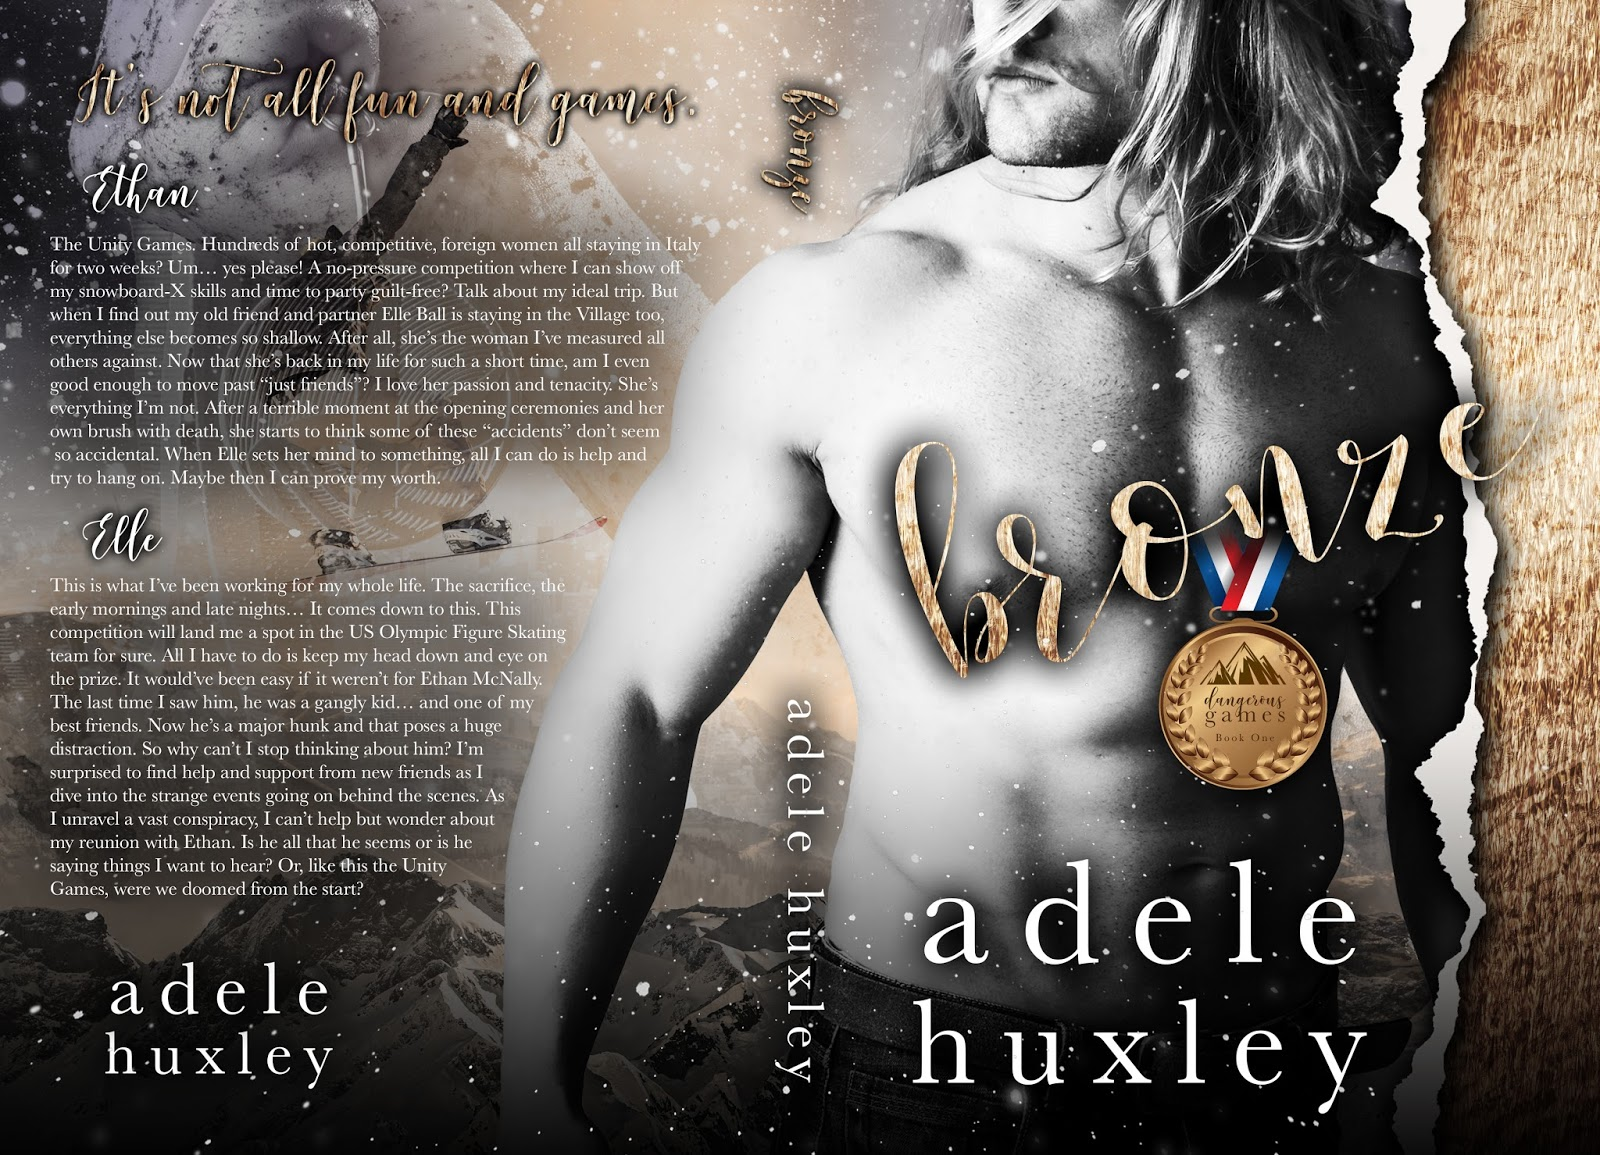 adele sweepstakes bronze by adele huxley book release giveaway 12 16 782